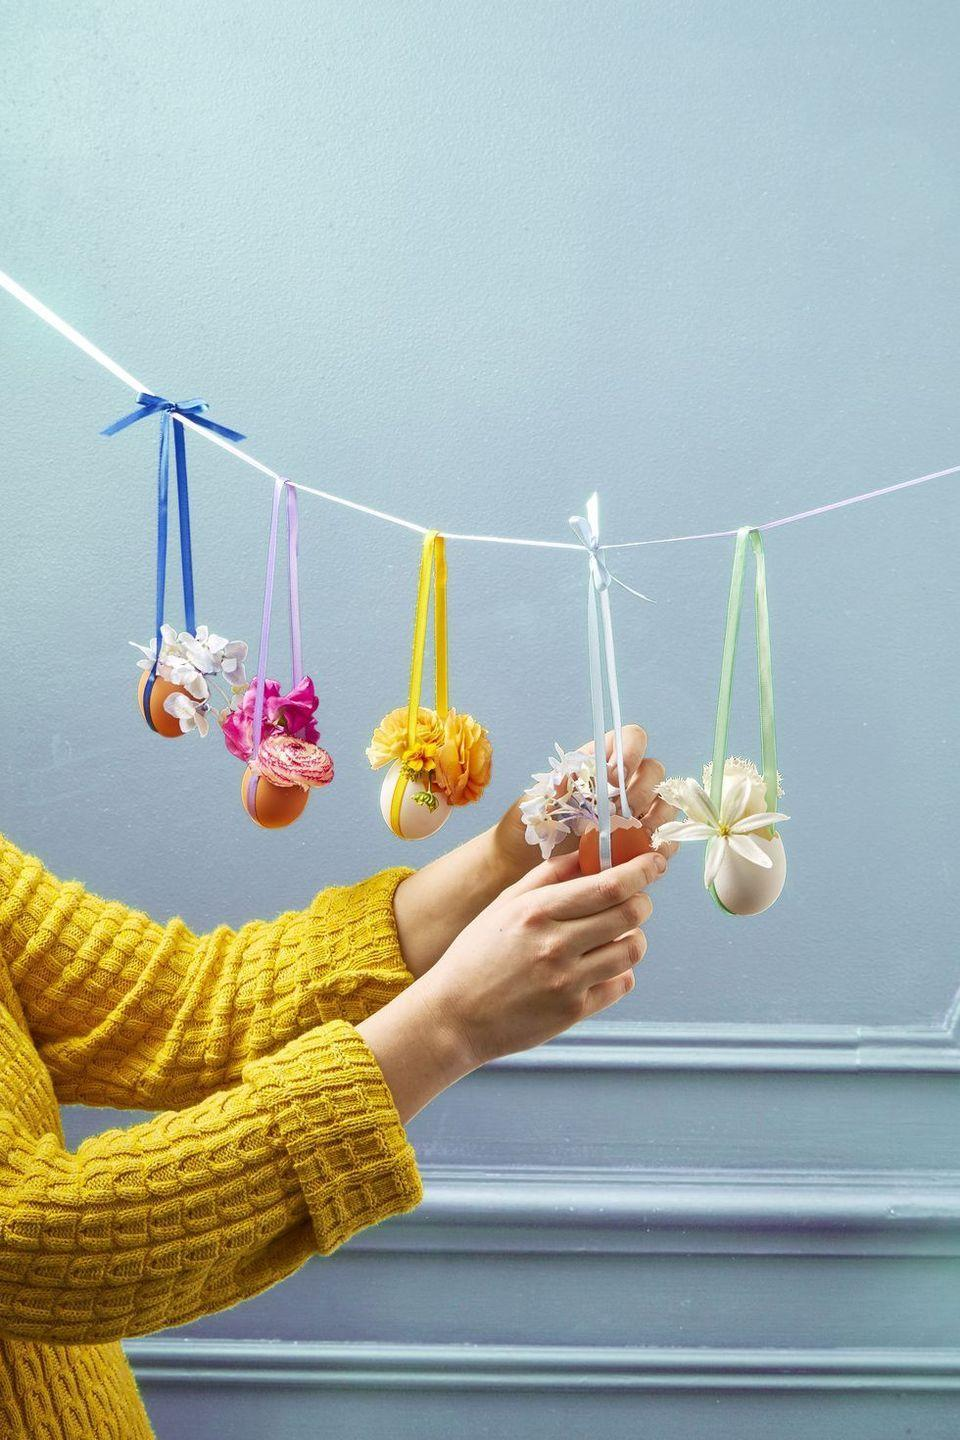 """<p>This colorful egg-shell garland is an Easter party must-have. Plus, it's so easy to make!</p><p><strong><em>Get the tutorial at <a href=""""https://www.goodhousekeeping.com/holidays/easter-ideas/g711/easter-spring-crafts/?slide=27"""" rel=""""nofollow noopener"""" target=""""_blank"""" data-ylk=""""slk:Good Housekeeping"""" class=""""link rapid-noclick-resp"""">Good Housekeeping</a>.</em></strong></p><p><strong><a class=""""link rapid-noclick-resp"""" href=""""https://www.amazon.com/LaRibbons-Solid-Ribbon-Colors-Package/dp/B009V35YVC/?tag=syn-yahoo-20&ascsubtag=%5Bartid%7C10070.g.1751%5Bsrc%7Cyahoo-us"""" rel=""""nofollow noopener"""" target=""""_blank"""" data-ylk=""""slk:SHOP SATIN RIBBON"""">SHOP SATIN RIBBON</a></strong></p>"""